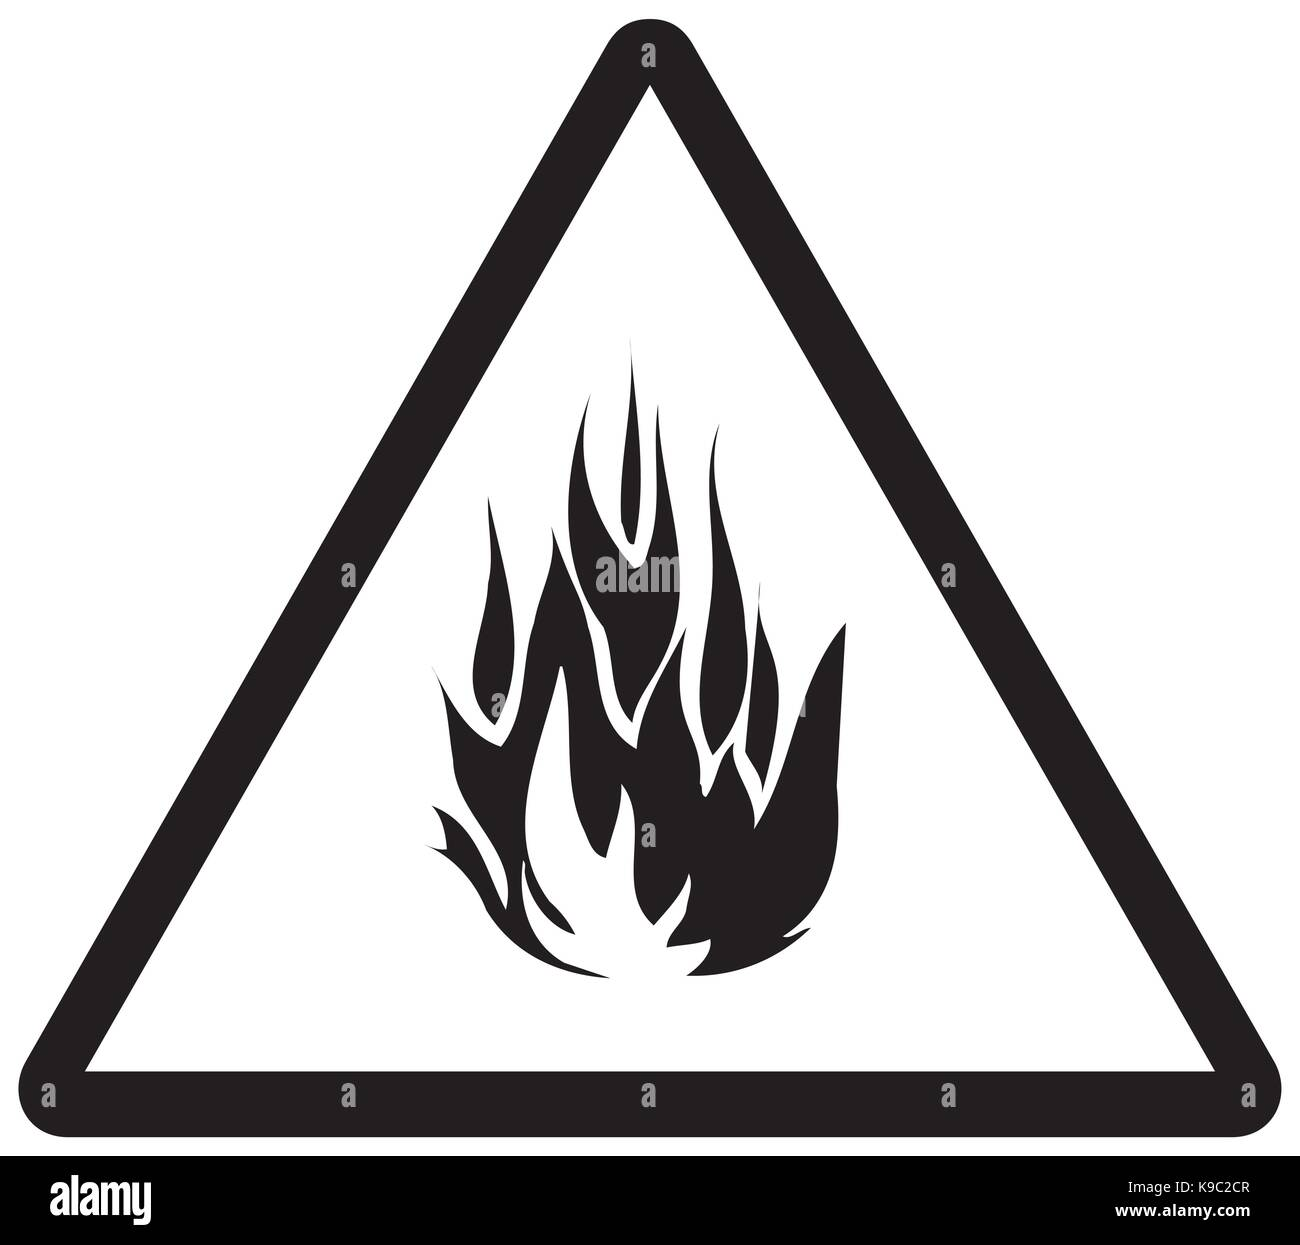 Fire warning signs - Stock Image